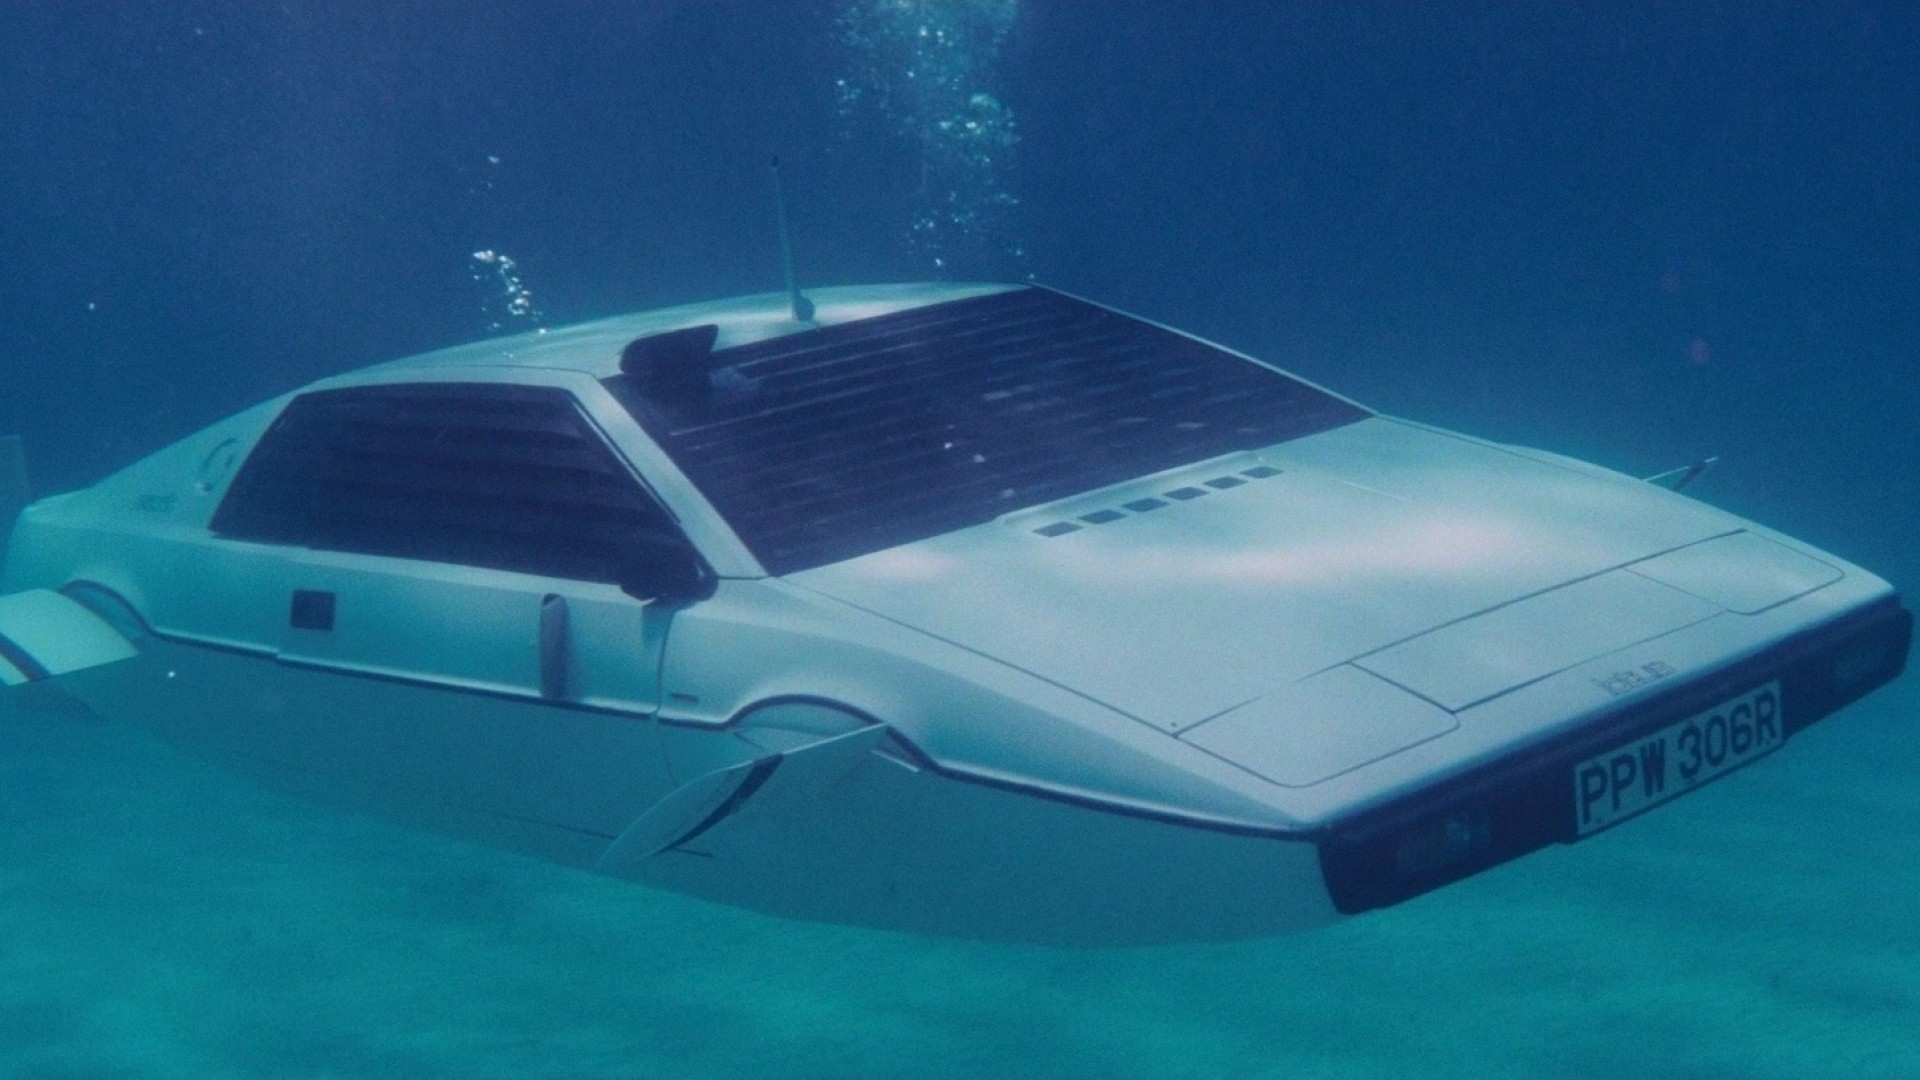 Lotus Esprit Submarine (The Spy Who Loved Me)